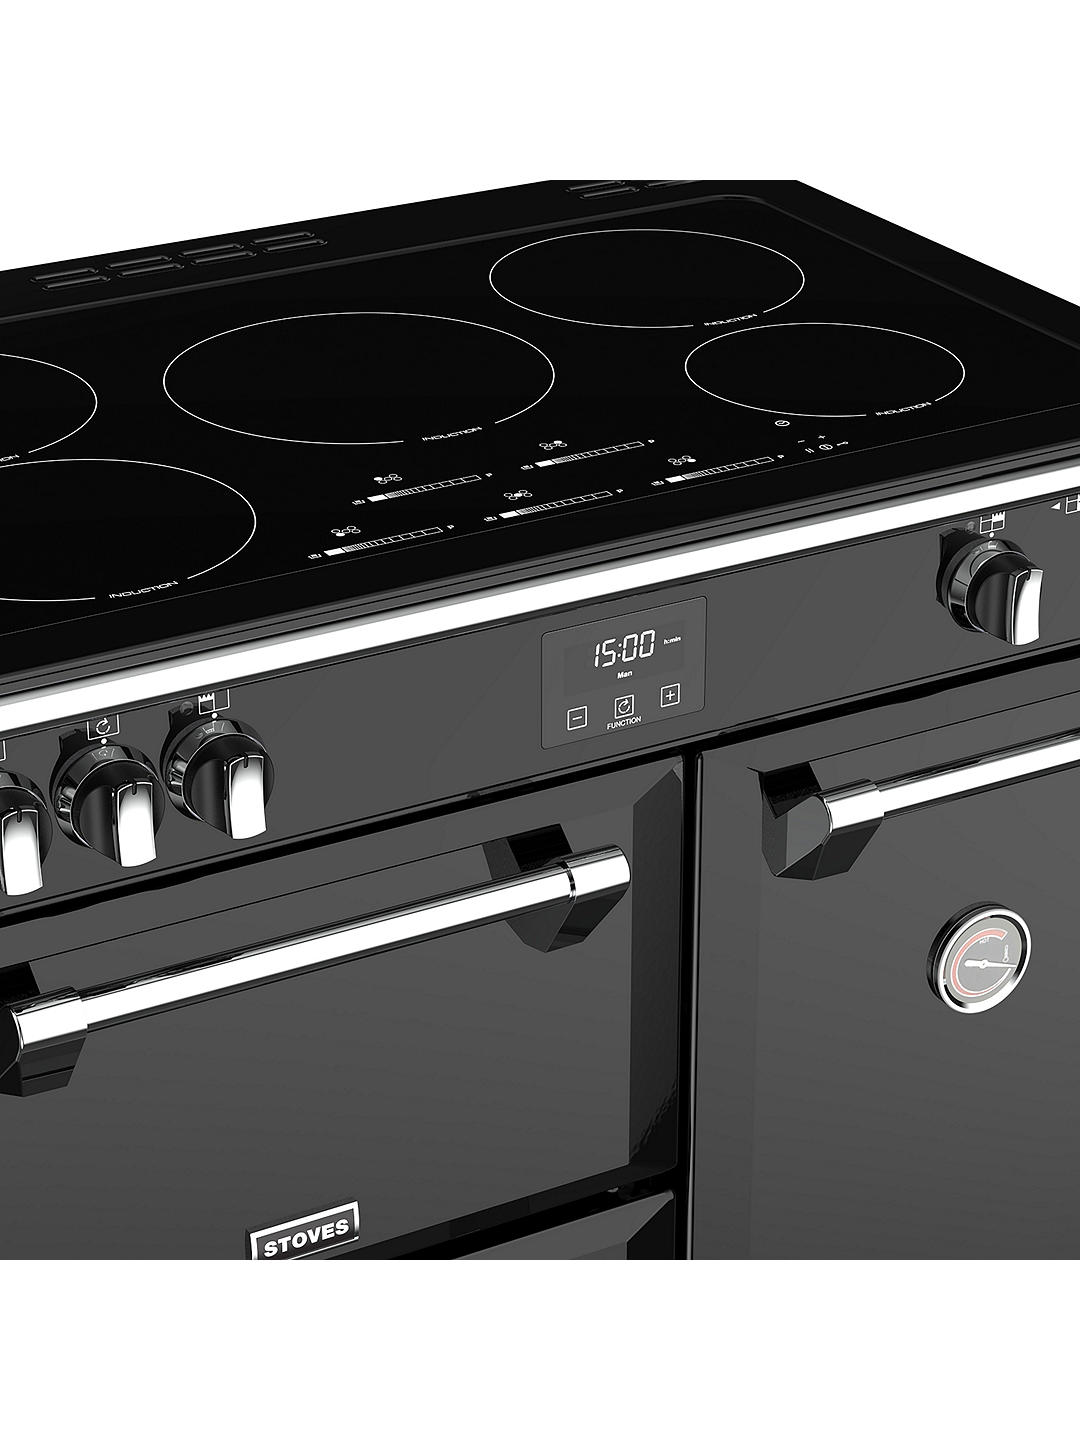 Buy Stoves Richmond Deluxe S900Ei Induction Range Cooker, Black Online at johnlewis.com